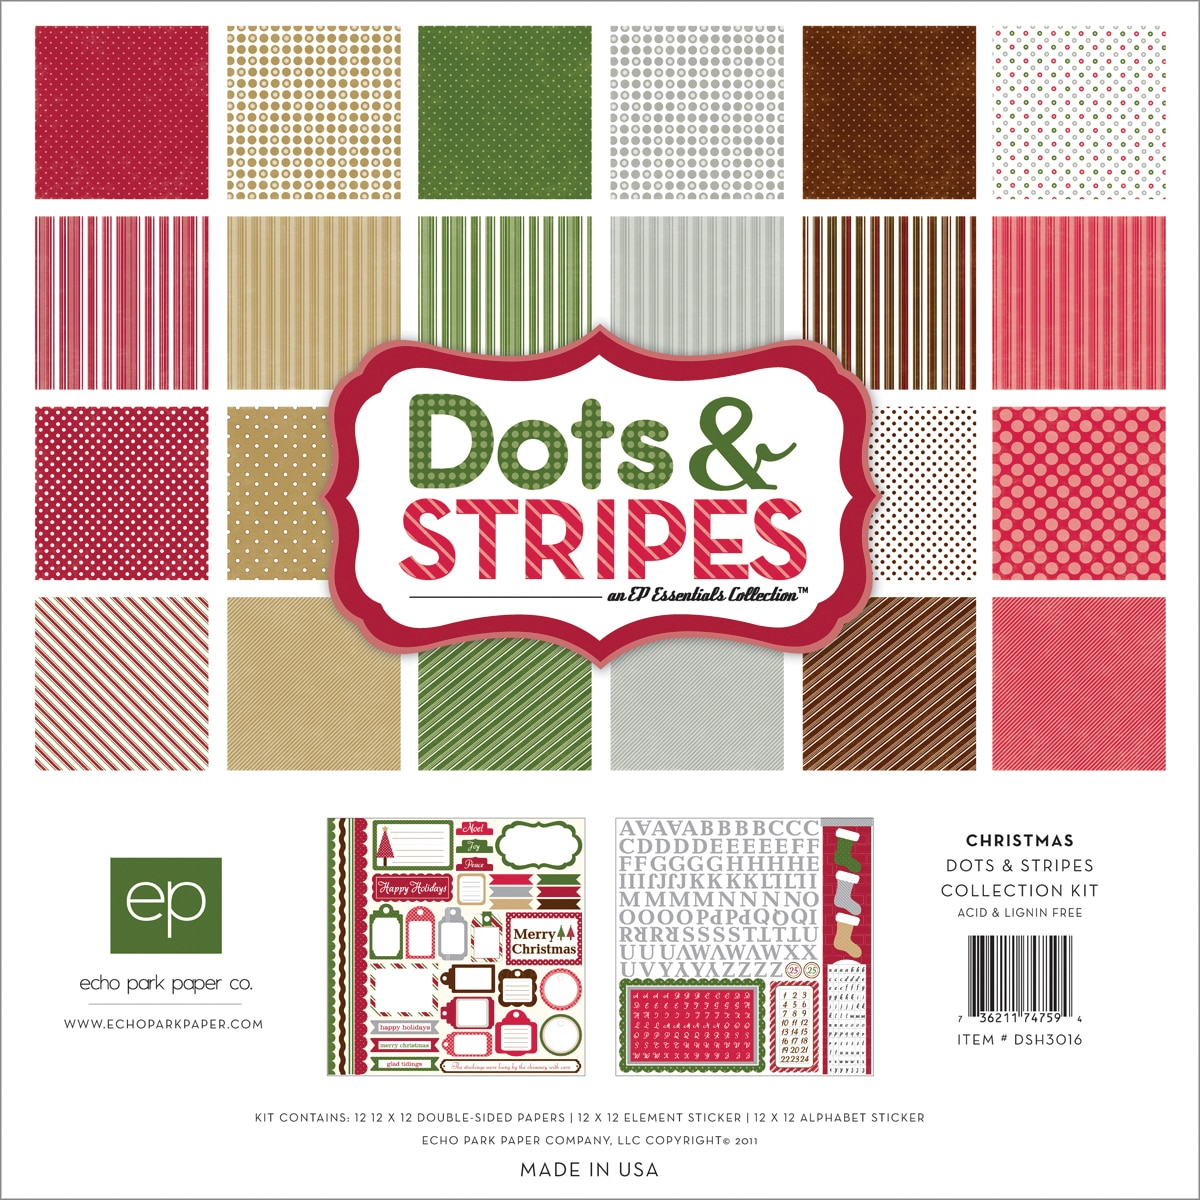 Echo Park Paper 'Christmas Dots and Stripes' Collection Kit